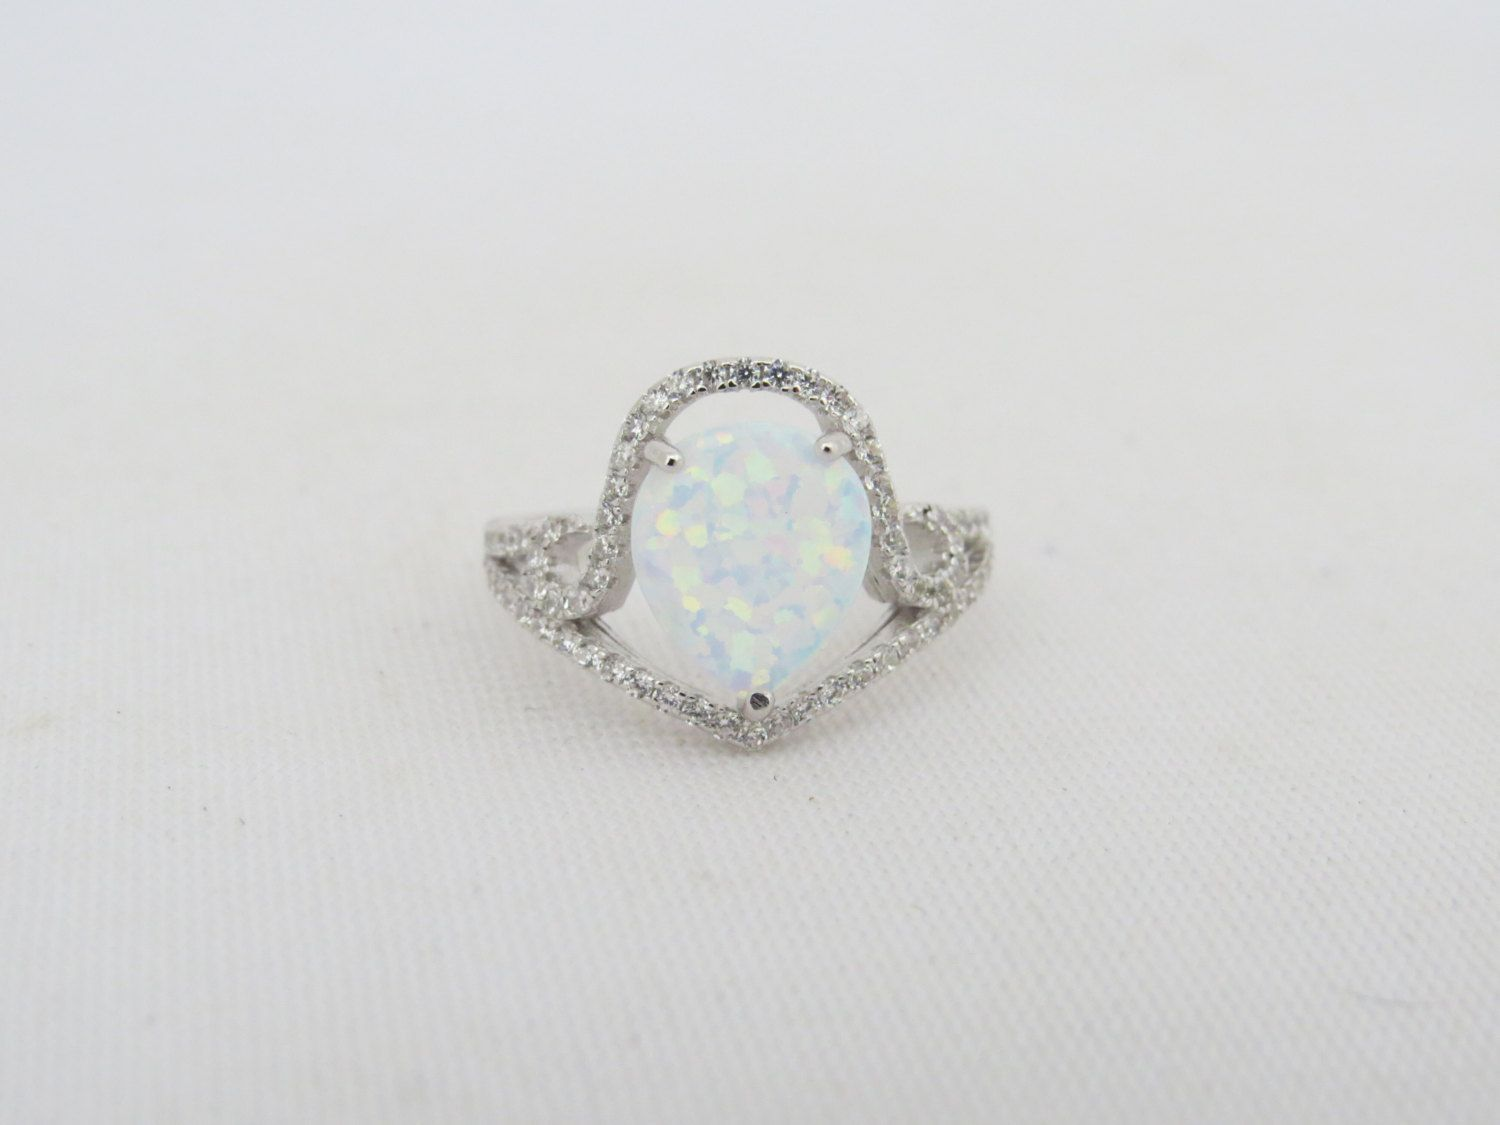 Vintage Sterling Silver White Opal /& White Topaz Pave Ring Size 7.25